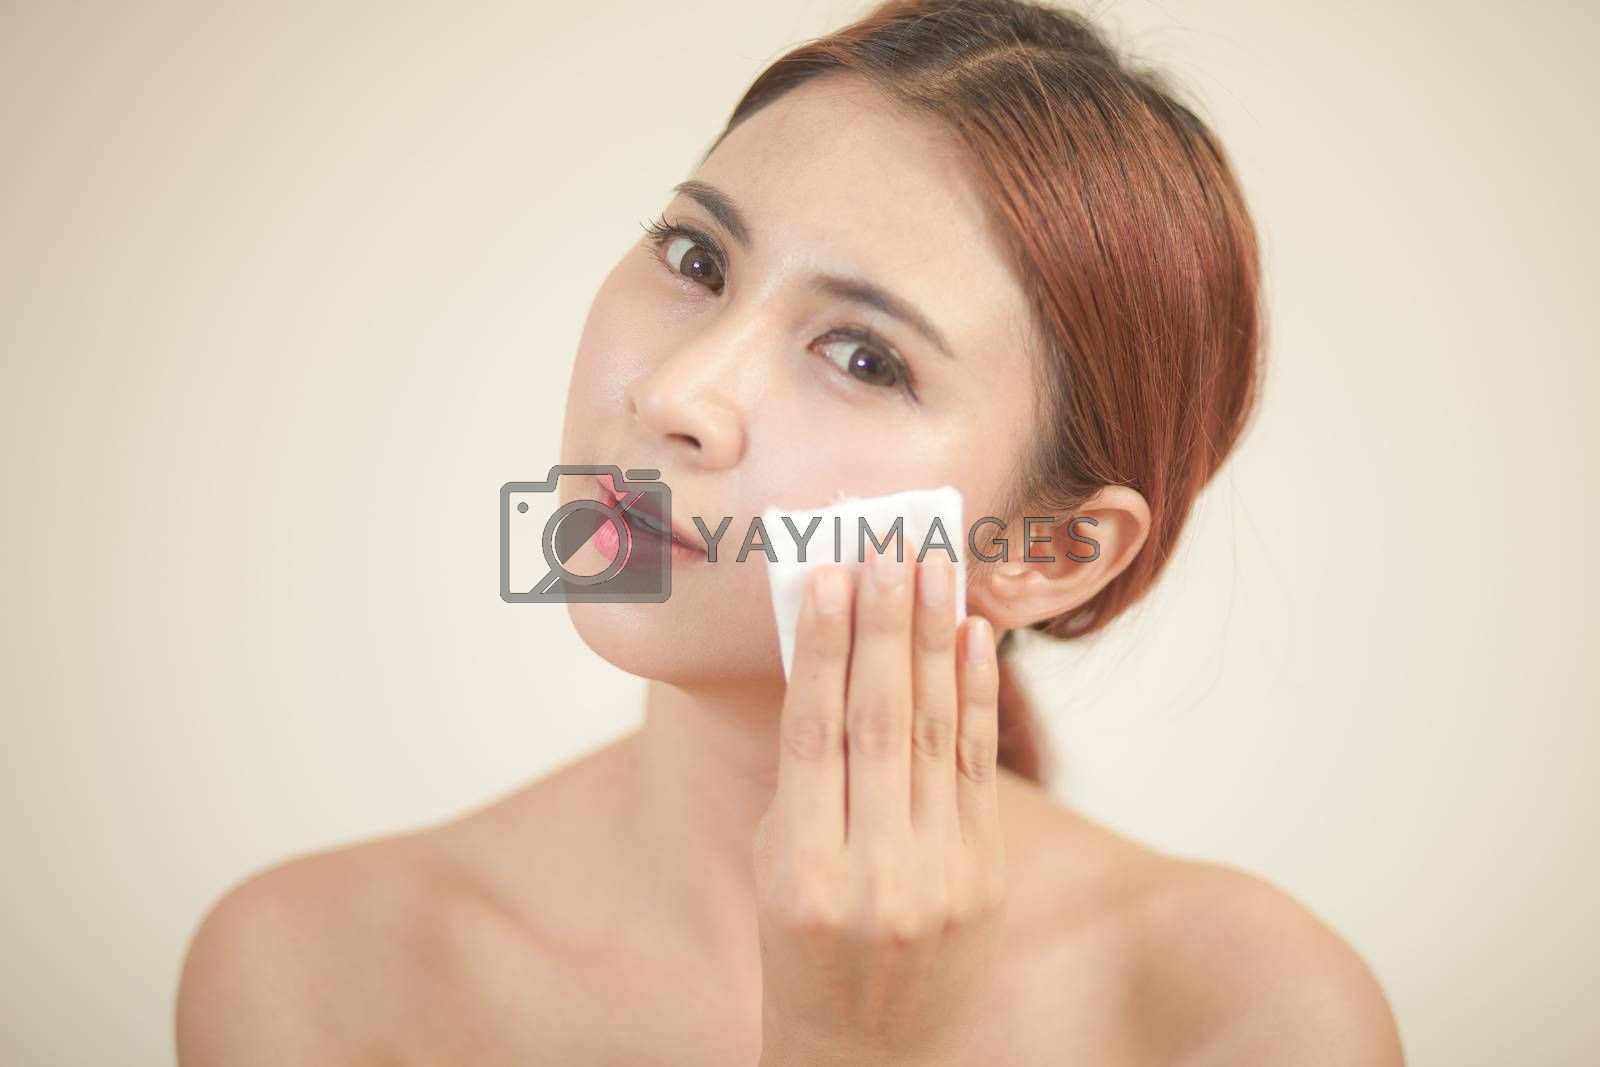 A close up of a beautiful young woman removing her make up.